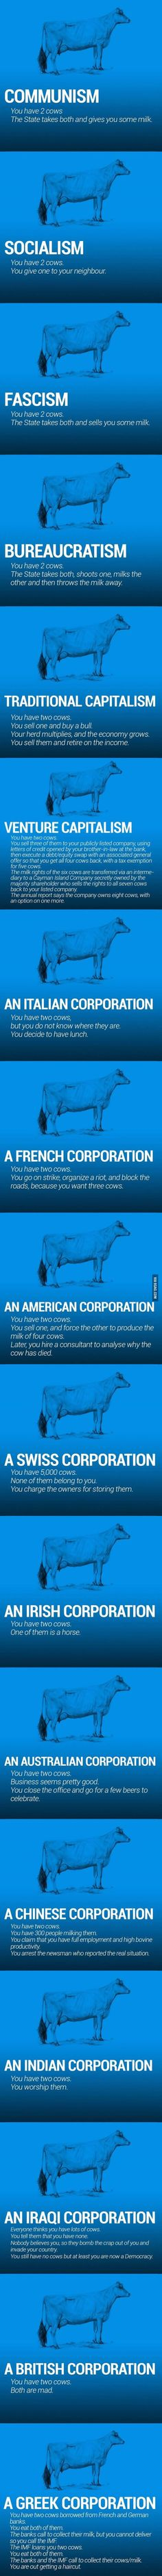 **** Very comprehensive. But wait, there's more! NAZISM: You have two cows. The State takes both and shoots you. SURREALISM: You have two giraffes. The government requires you to take harmonica lessons. A JAPANESE CORPORATION: You have two cows. You redesign them so they are one-tenth the size of an ordinary cow and produce twenty times the milk. You then create a clever cow cartoon image called a Cowkimona and market it worldwide. (Cont. below)